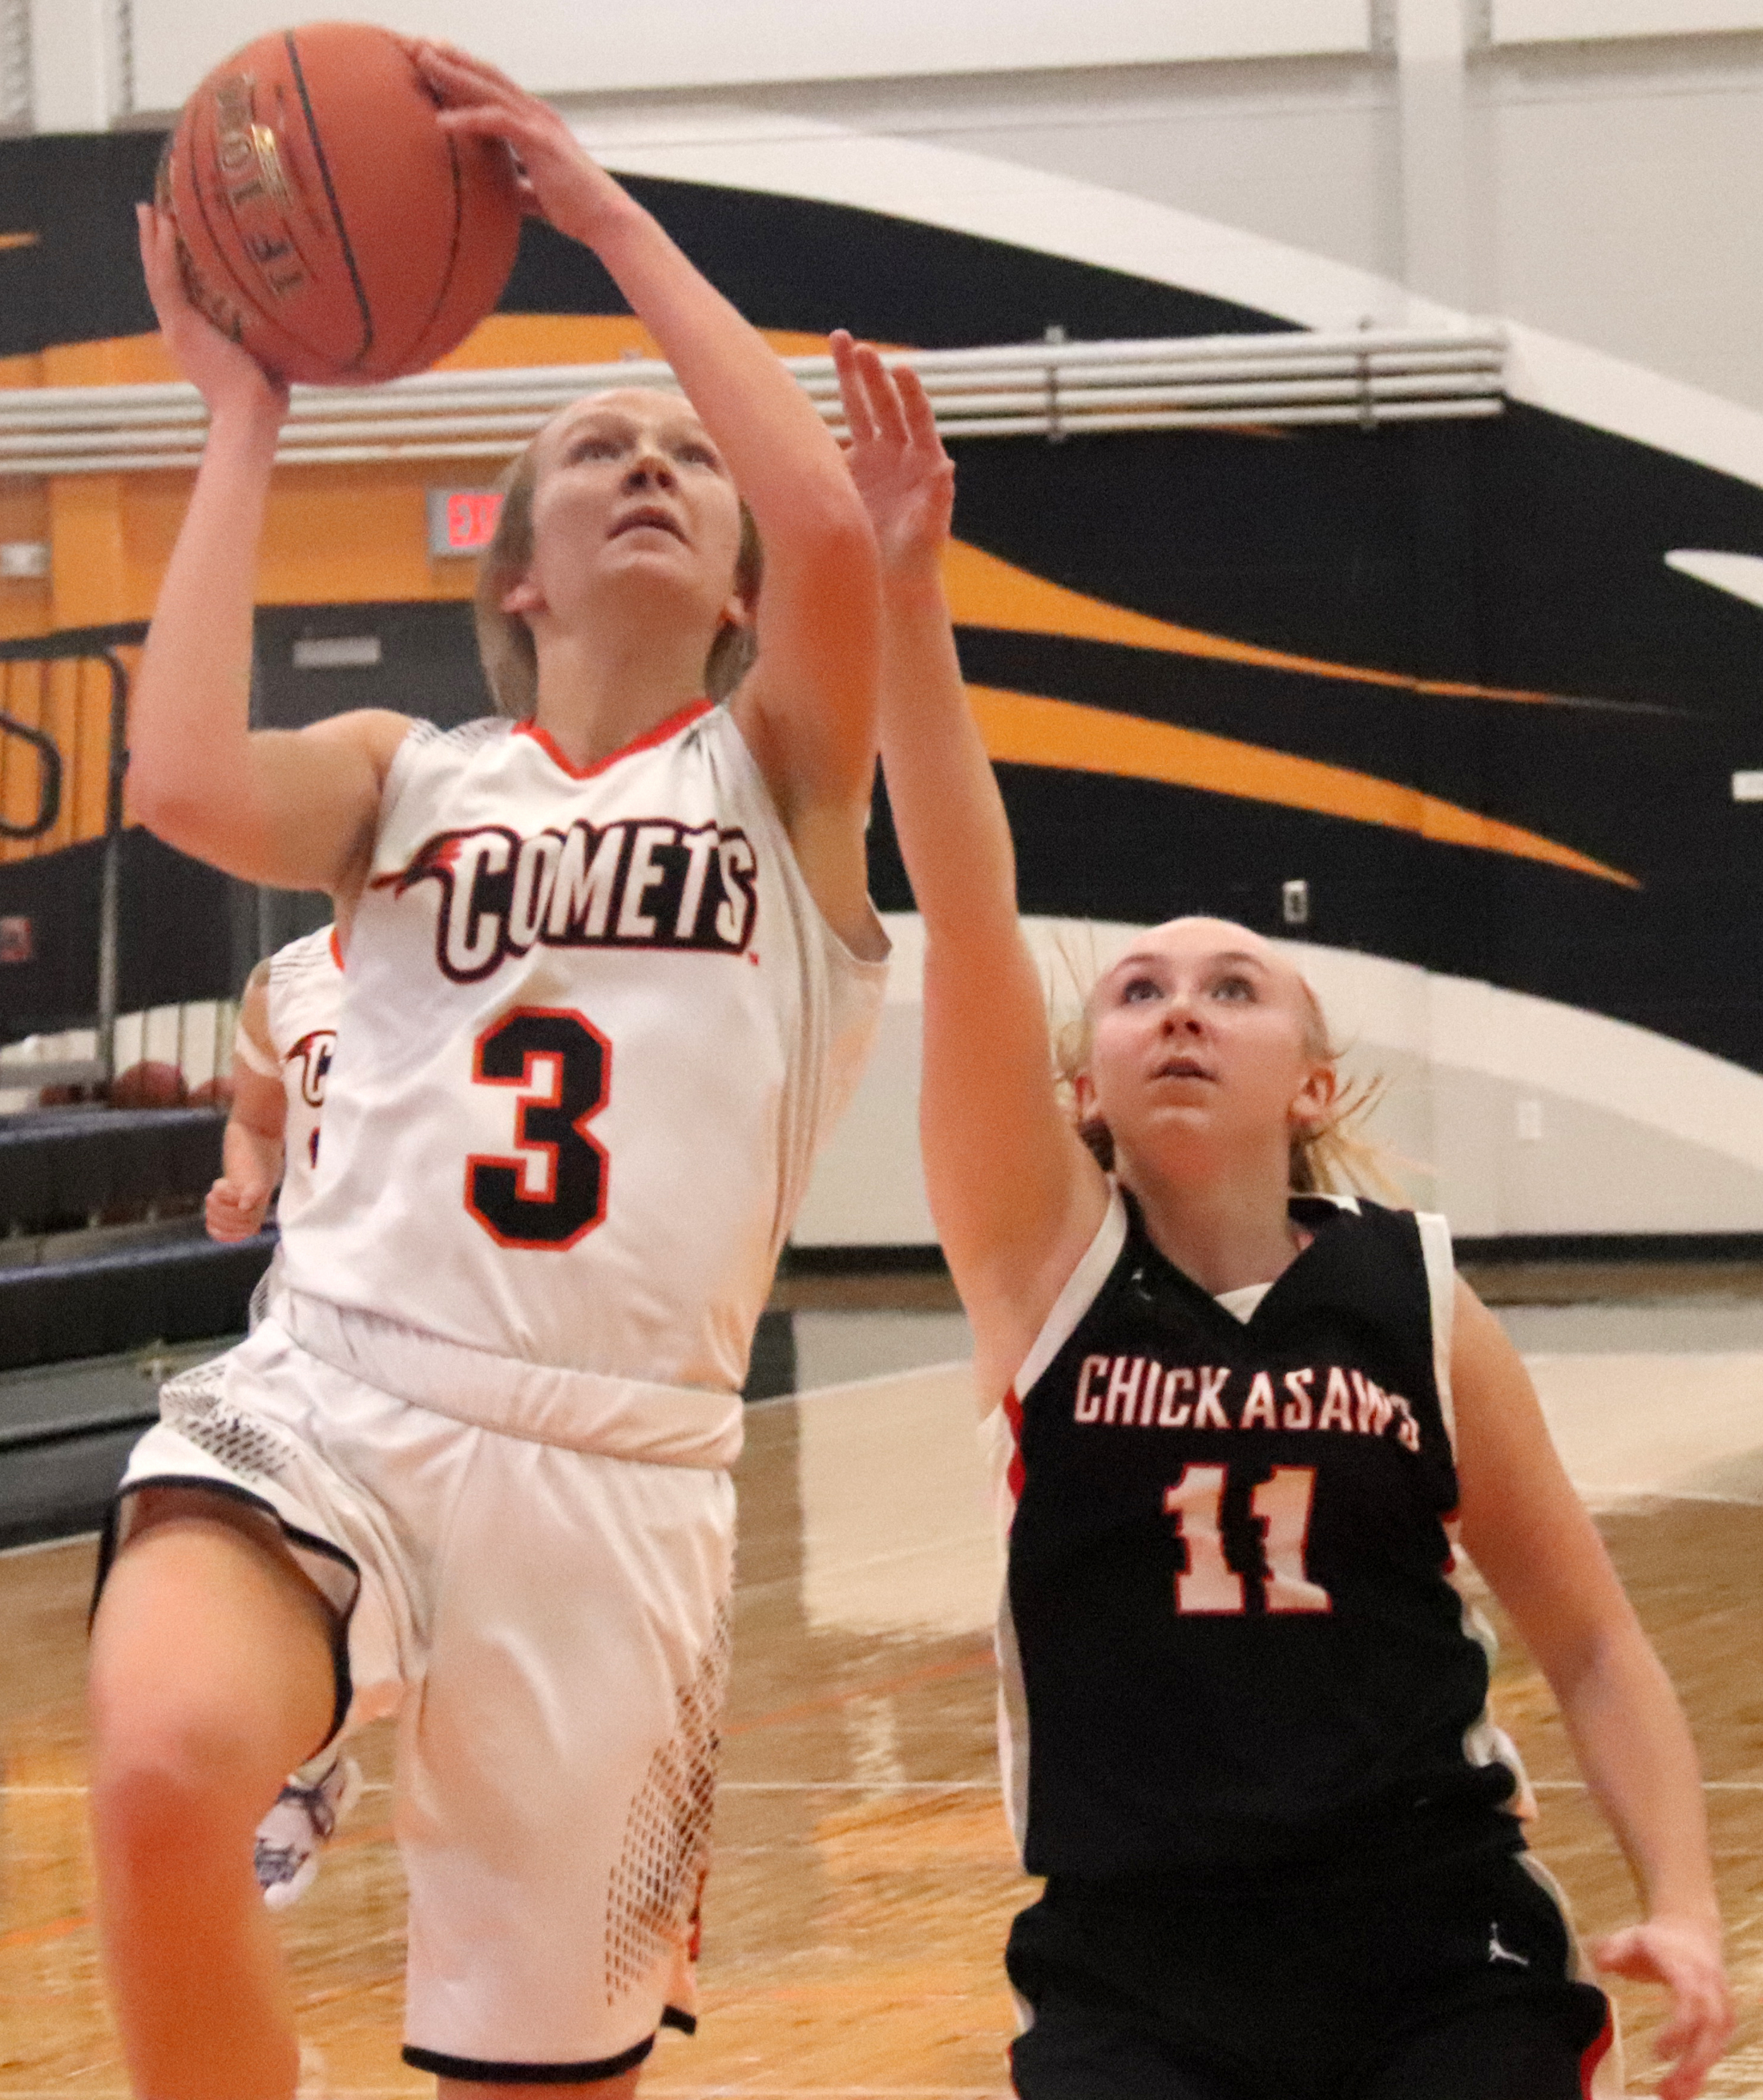 Comet boys get back on winning track, Comet girls fall  to Chickasaws